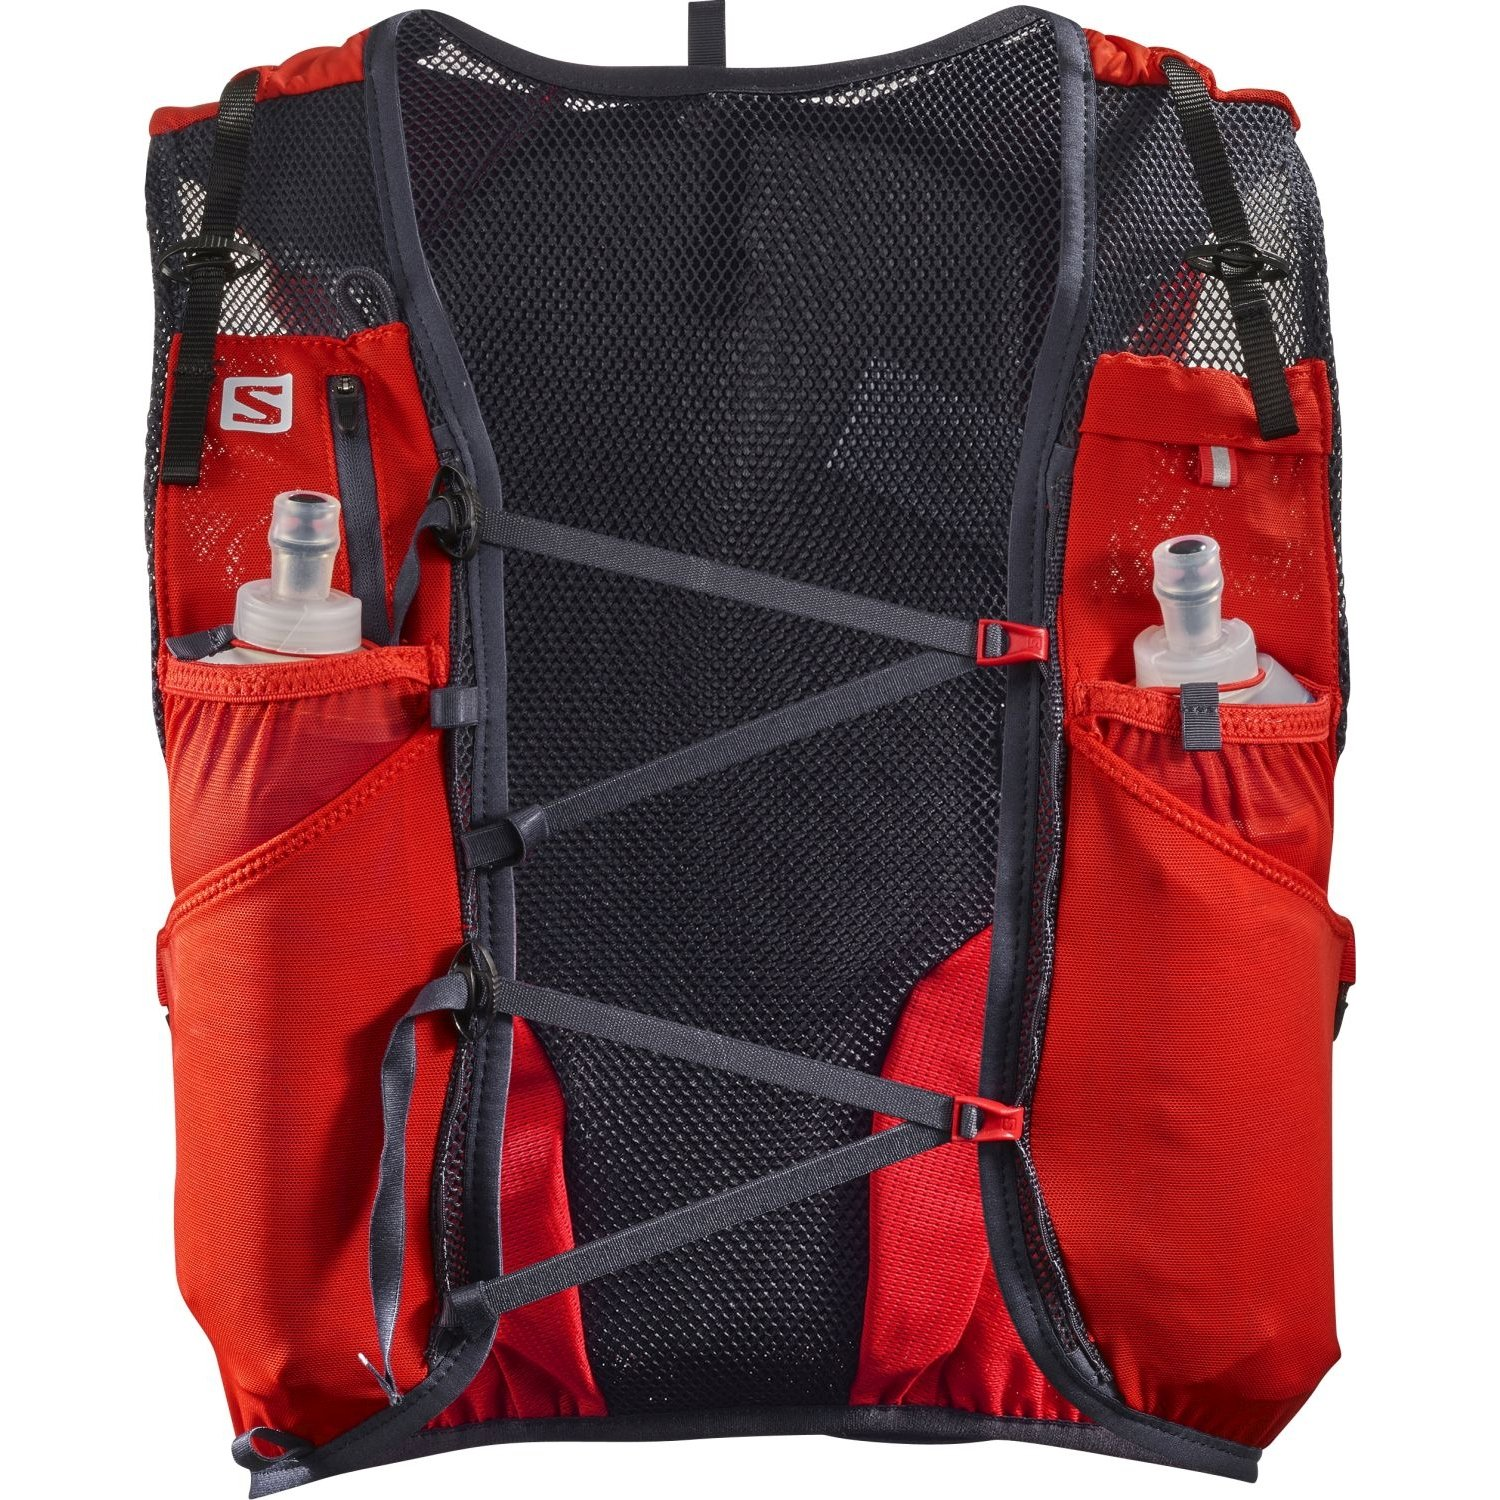 M Orange Mud Gear Vest Pro, 35oz 1L of on Board Hydration, Plus Sized Phone Storage, Super Stable Footprint for Run and Ride.